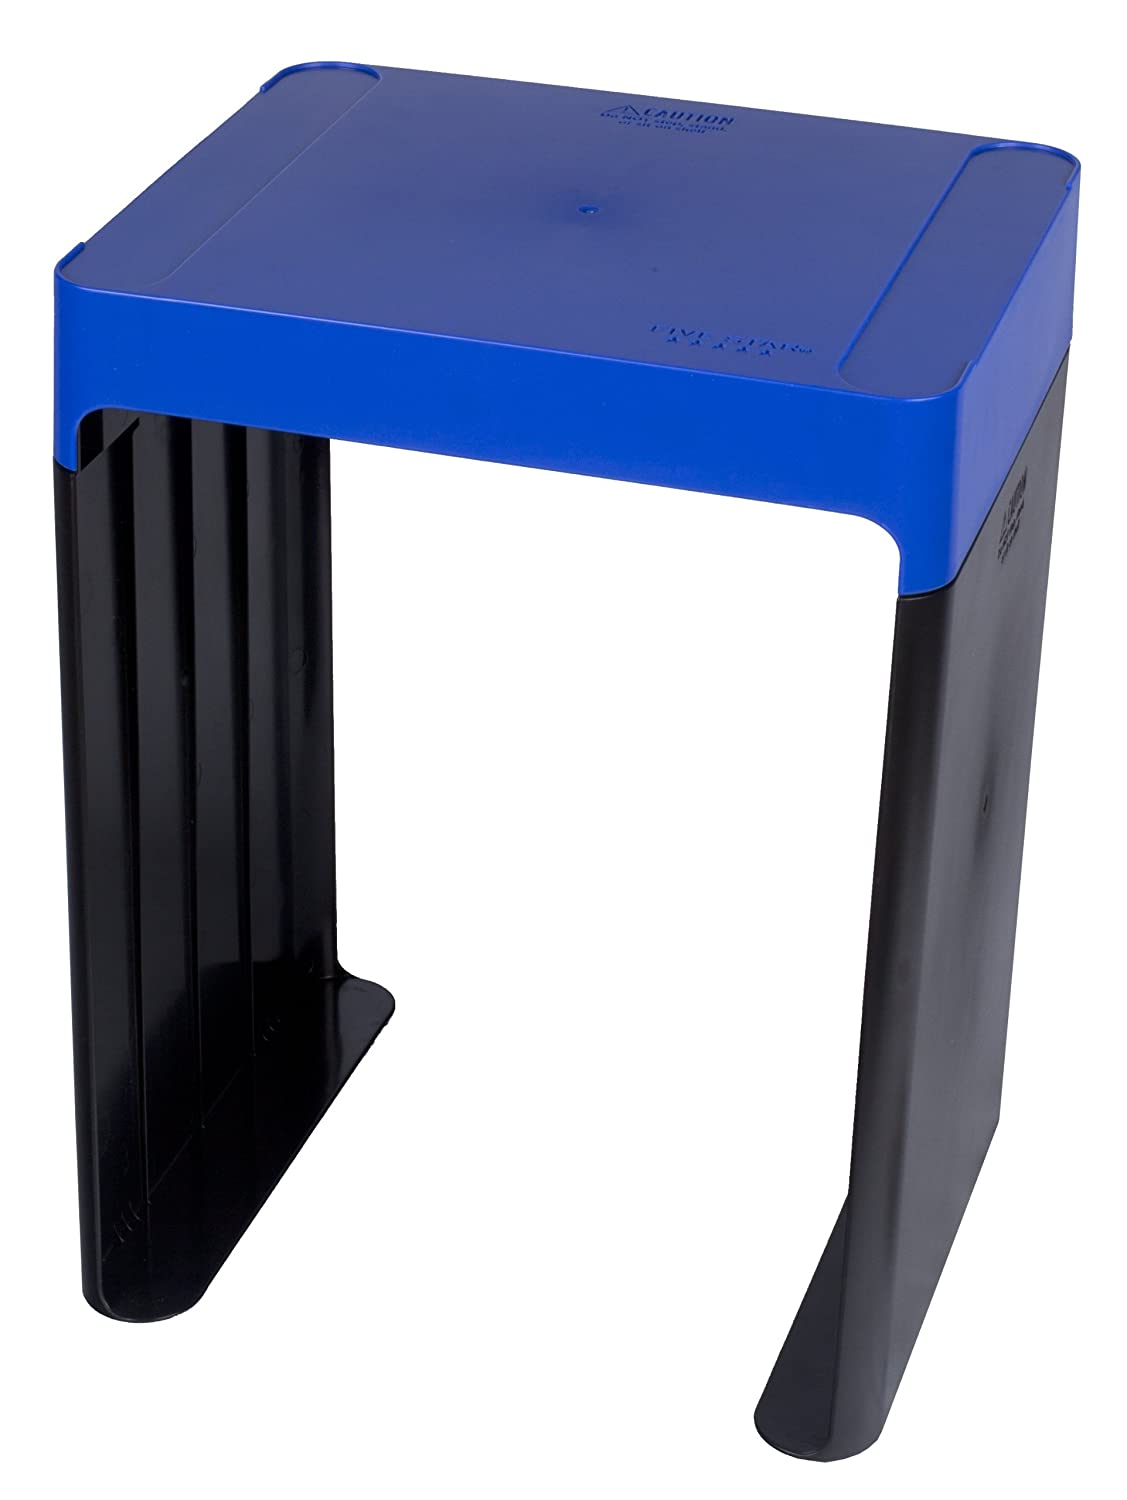 Five Star Stackable Locker Shelf, Blue (72226) ACCO Brands